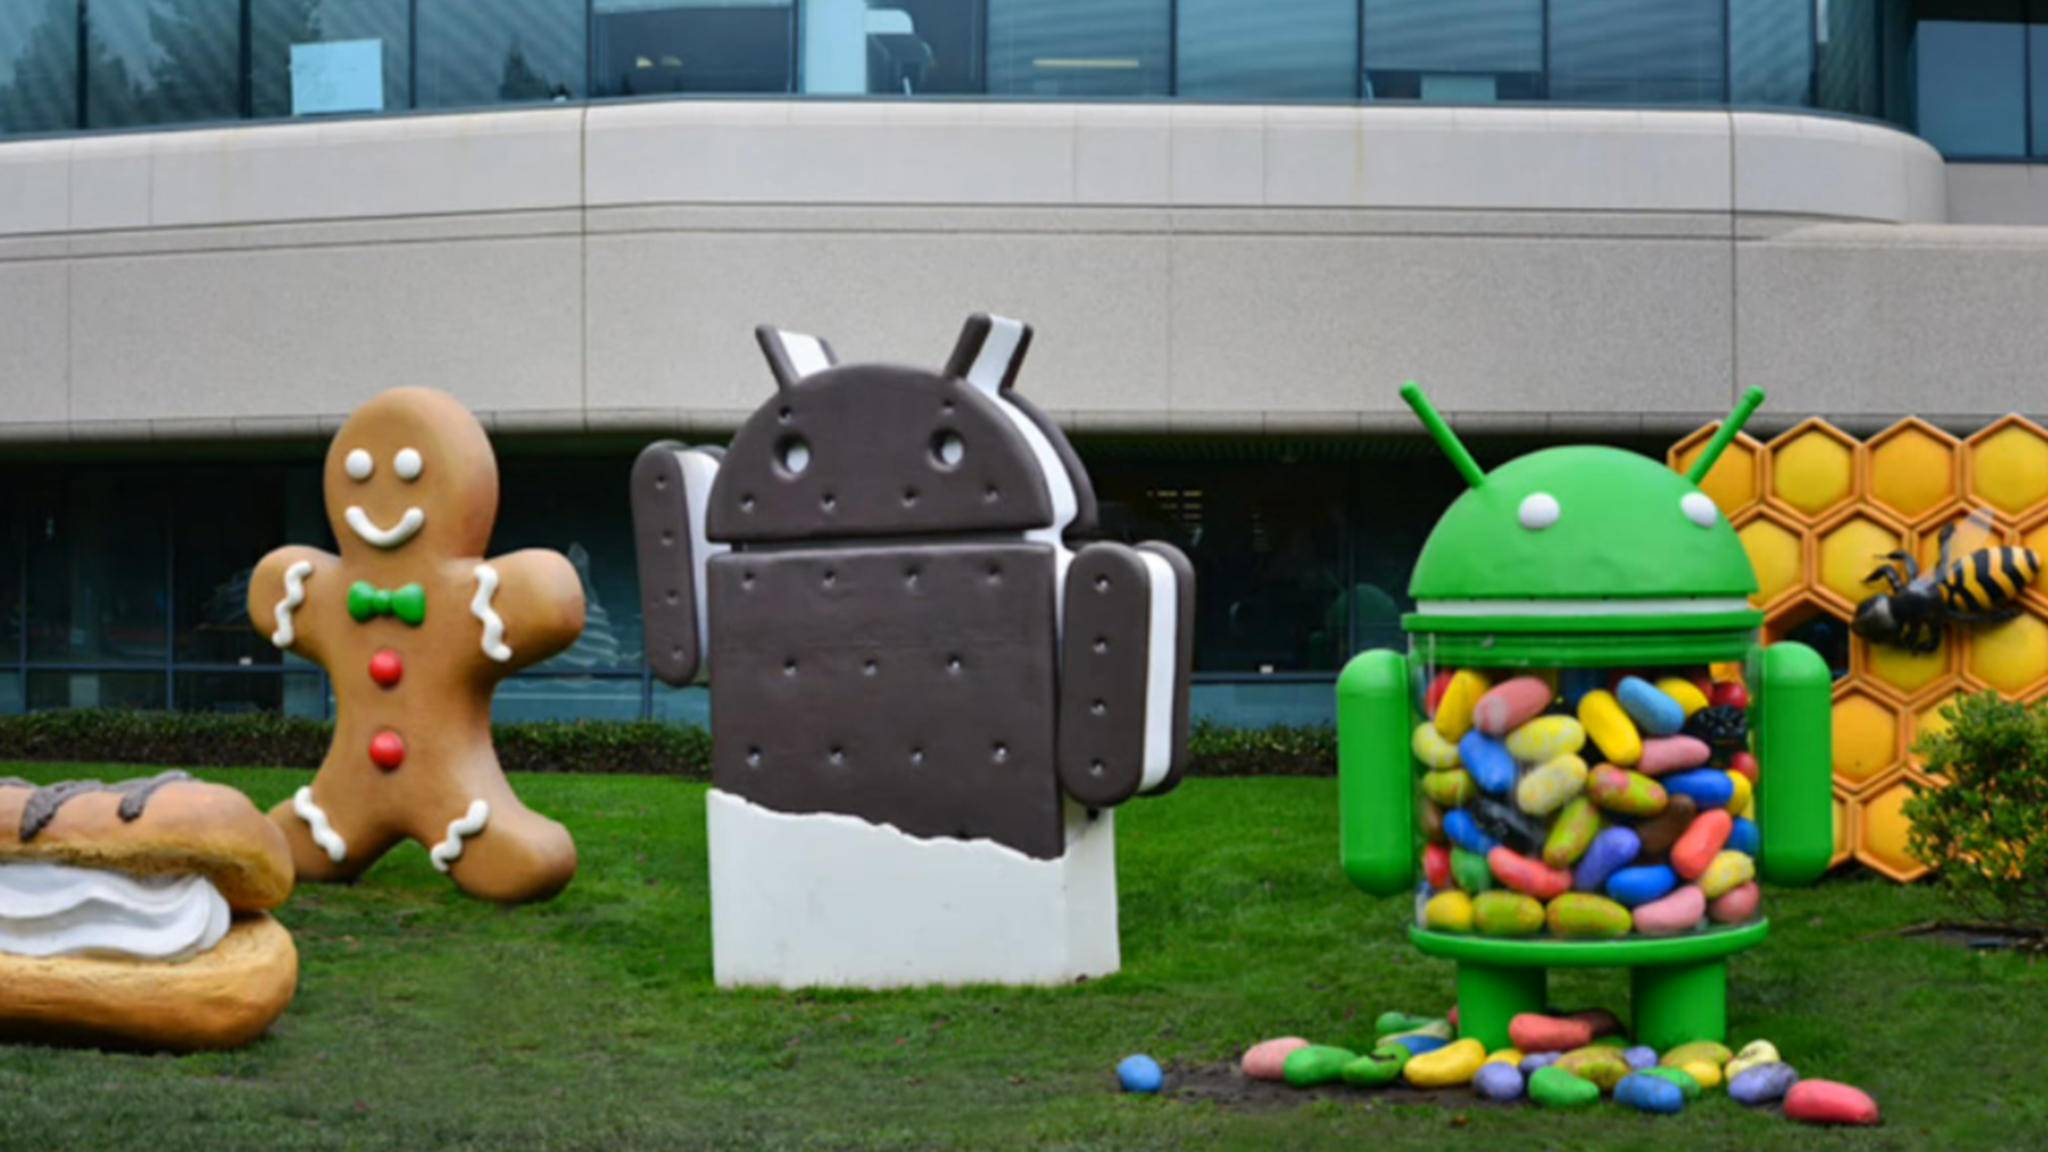 Android 8.0 Oreo? Android O ist jetzt offiziell – der volle Name allerdings noch nicht.